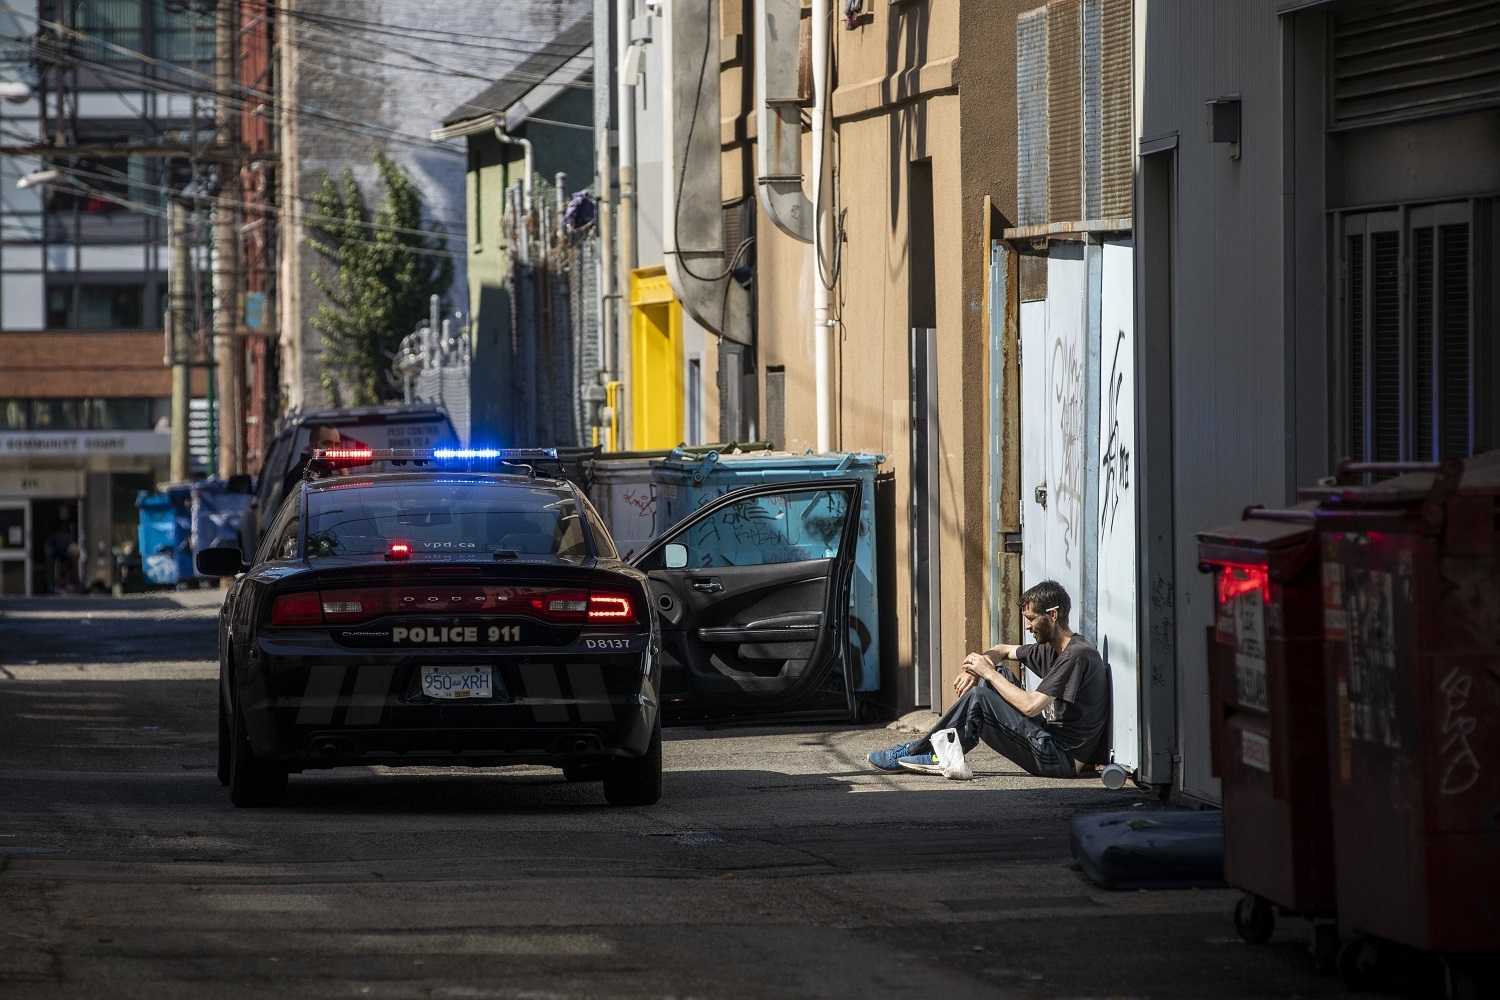 A man is detained by the Vancouver Police in the Downtown Eastside in Vancouver, British Columbia on Friday, September 6, 2019. (Ben Nelms/CBC)